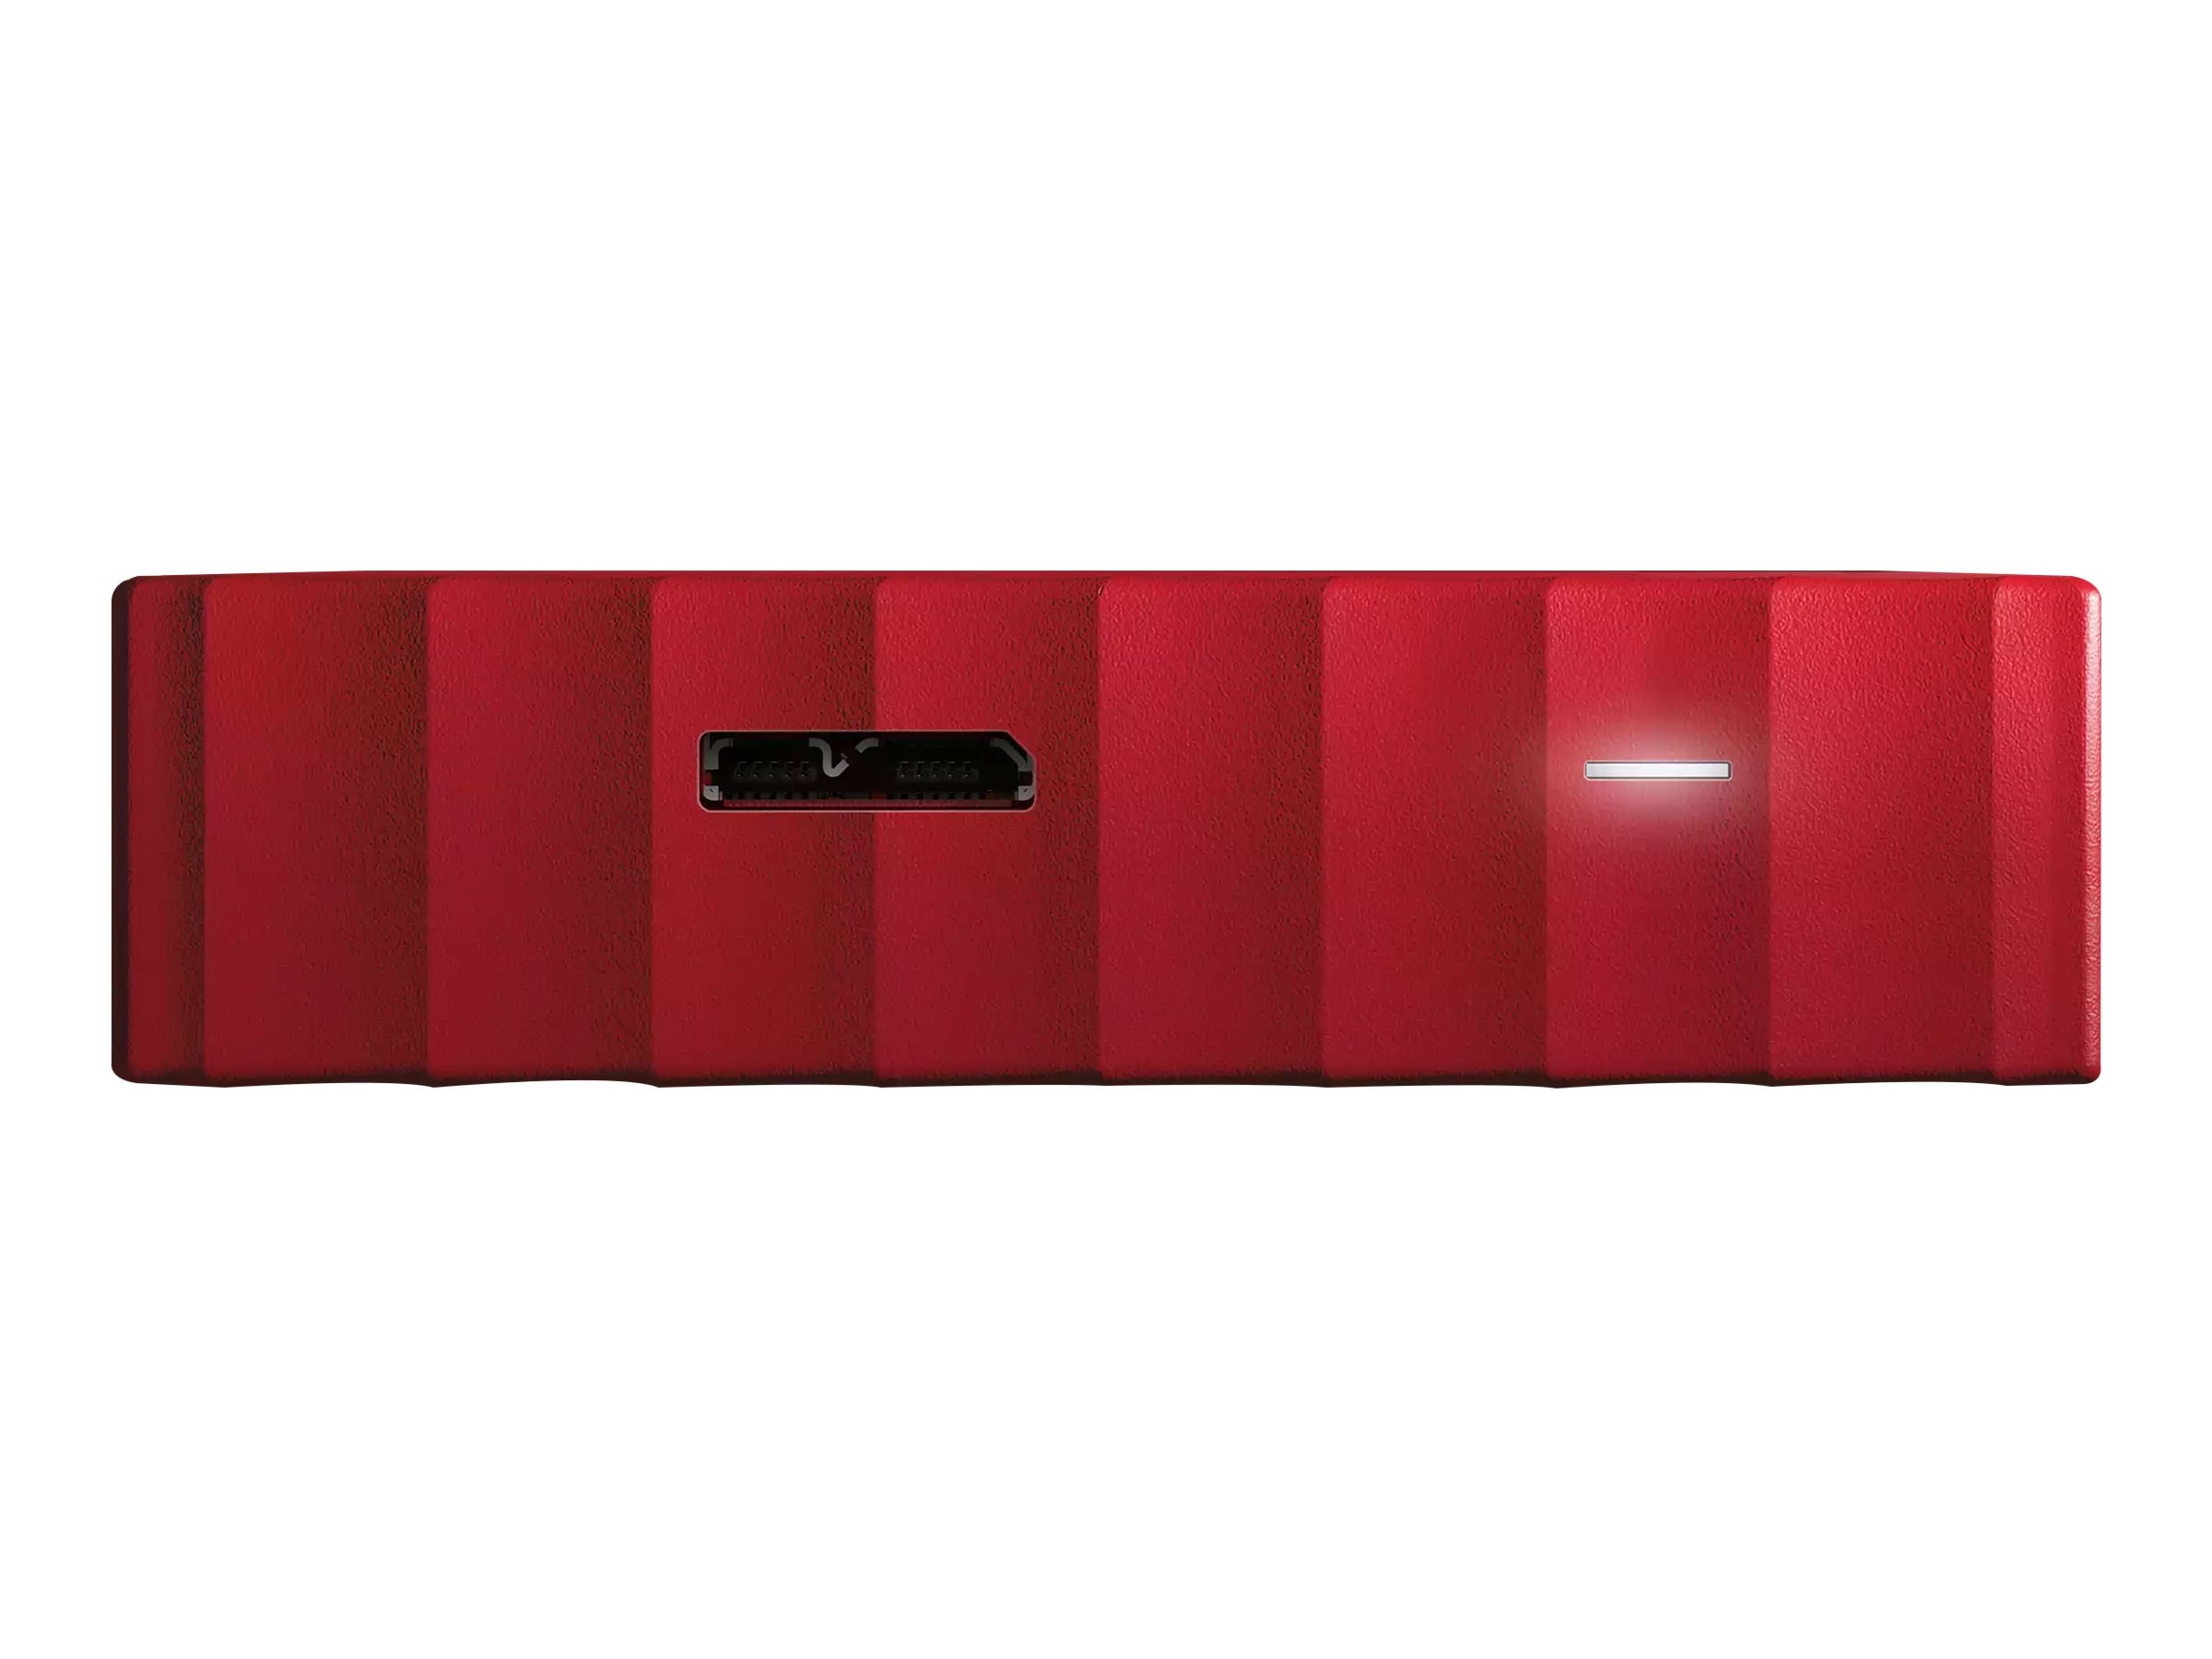 WD 4TB My Passport USB 3.0 Portable Hard Drive - Red, WDBYFT0040BRD-WESN